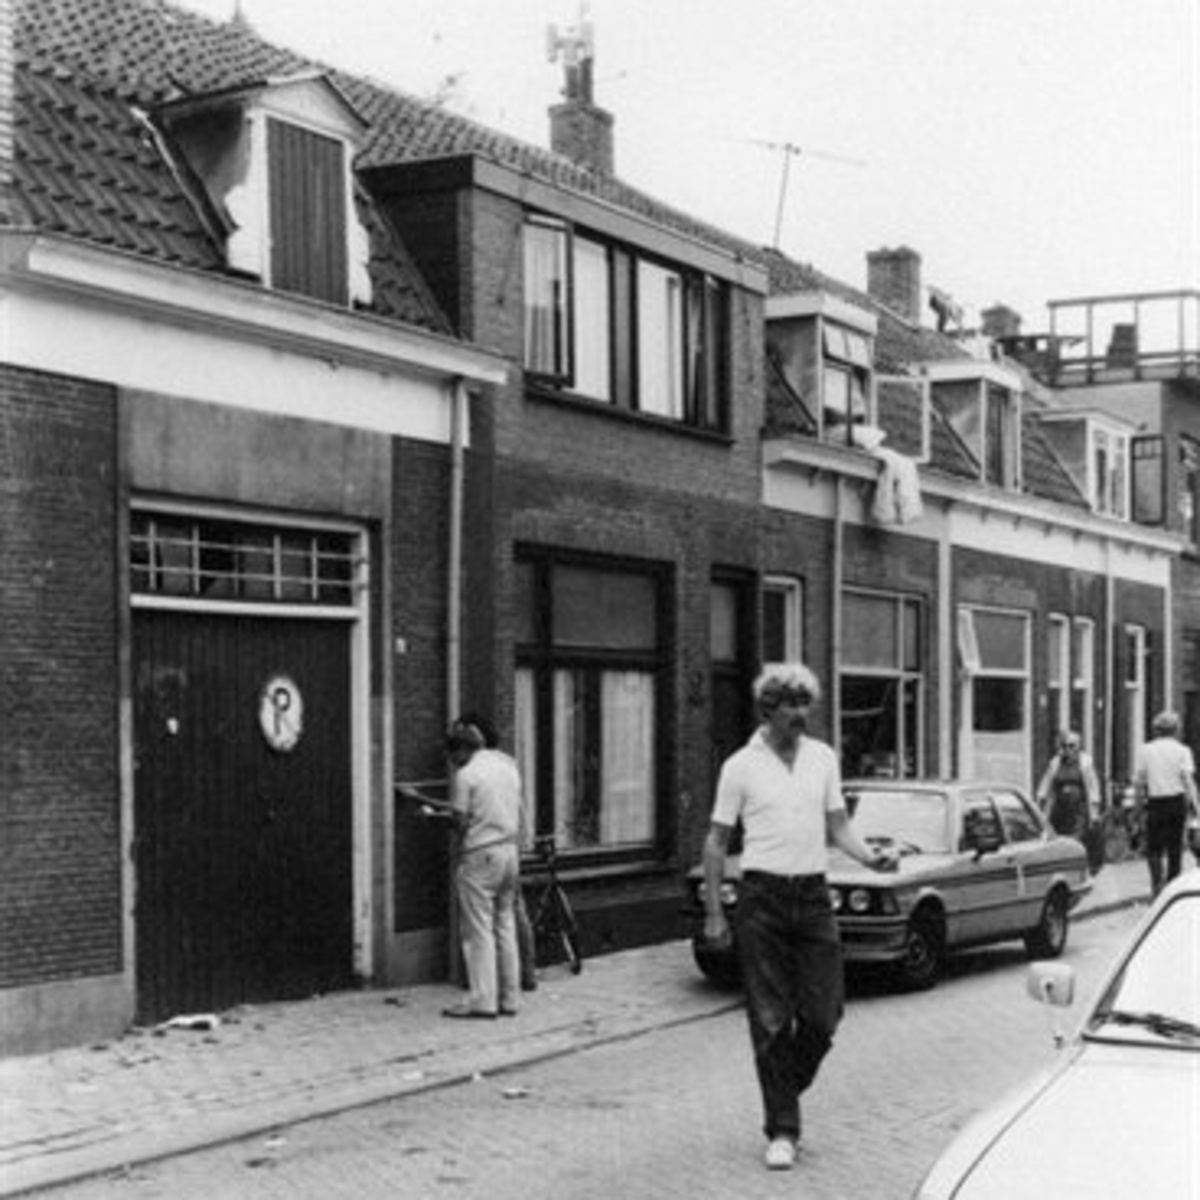 History-Steelcraft_house-Utrecht-1976.jpg